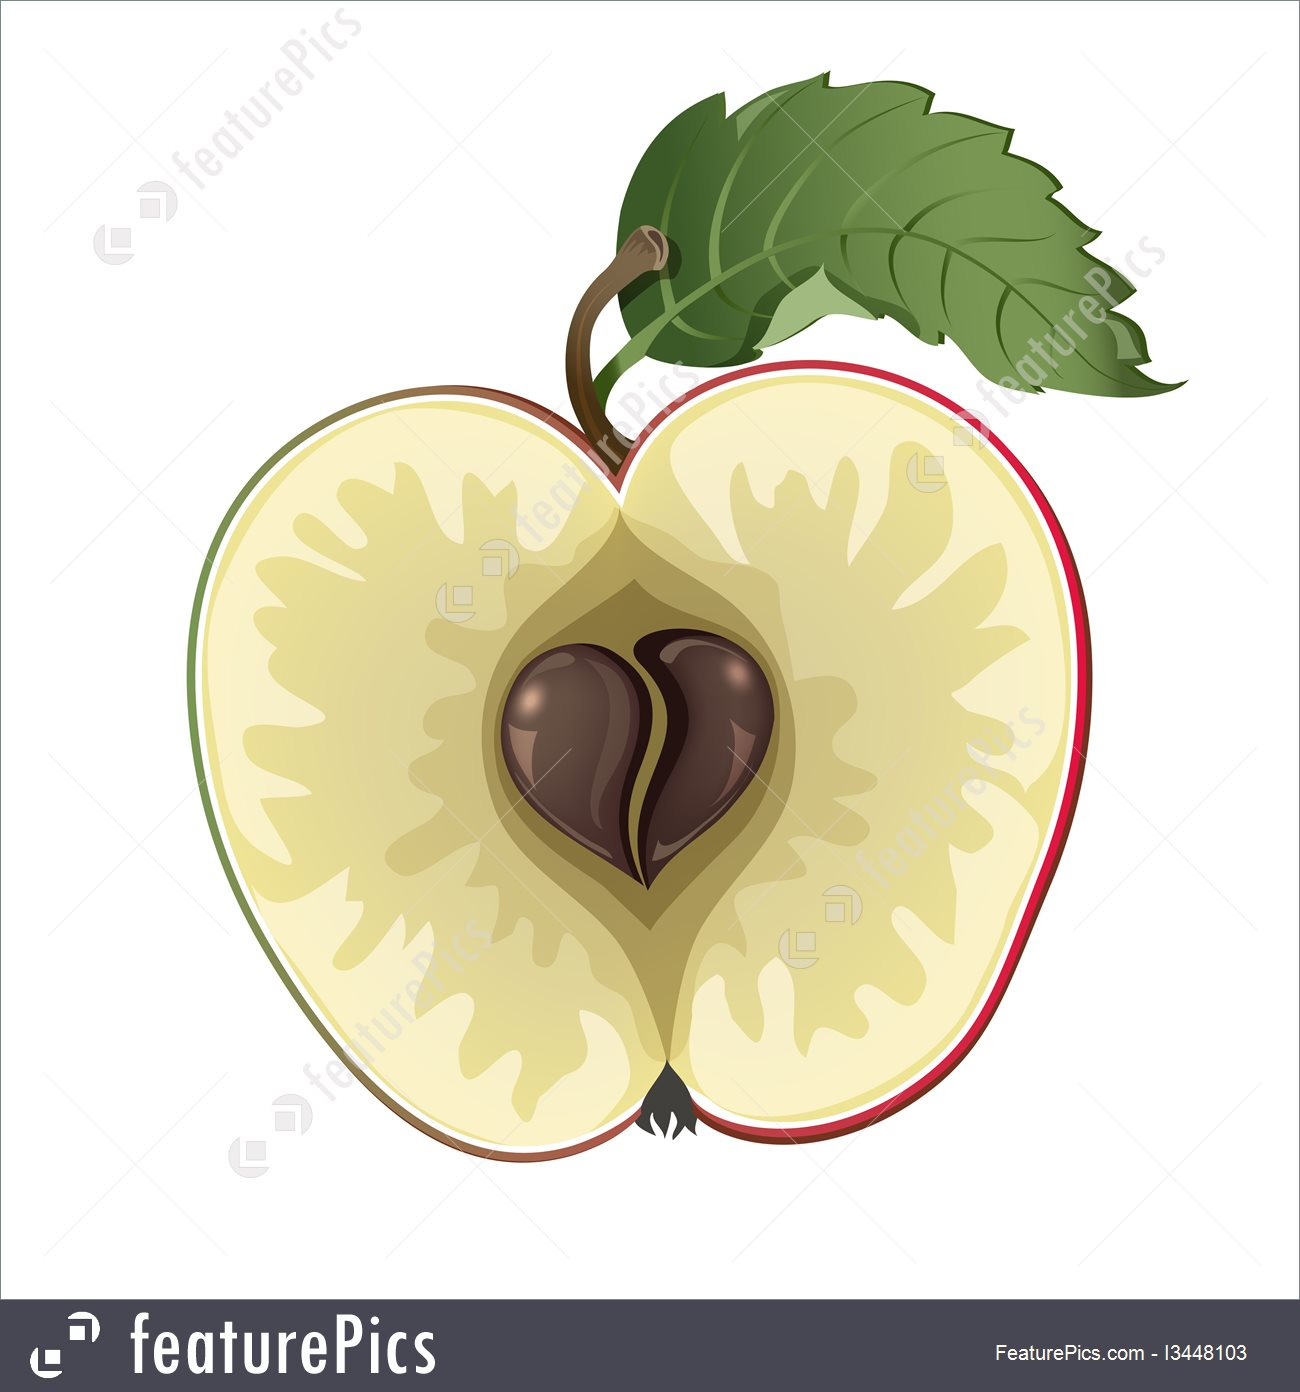 Food: Apple With Heart.